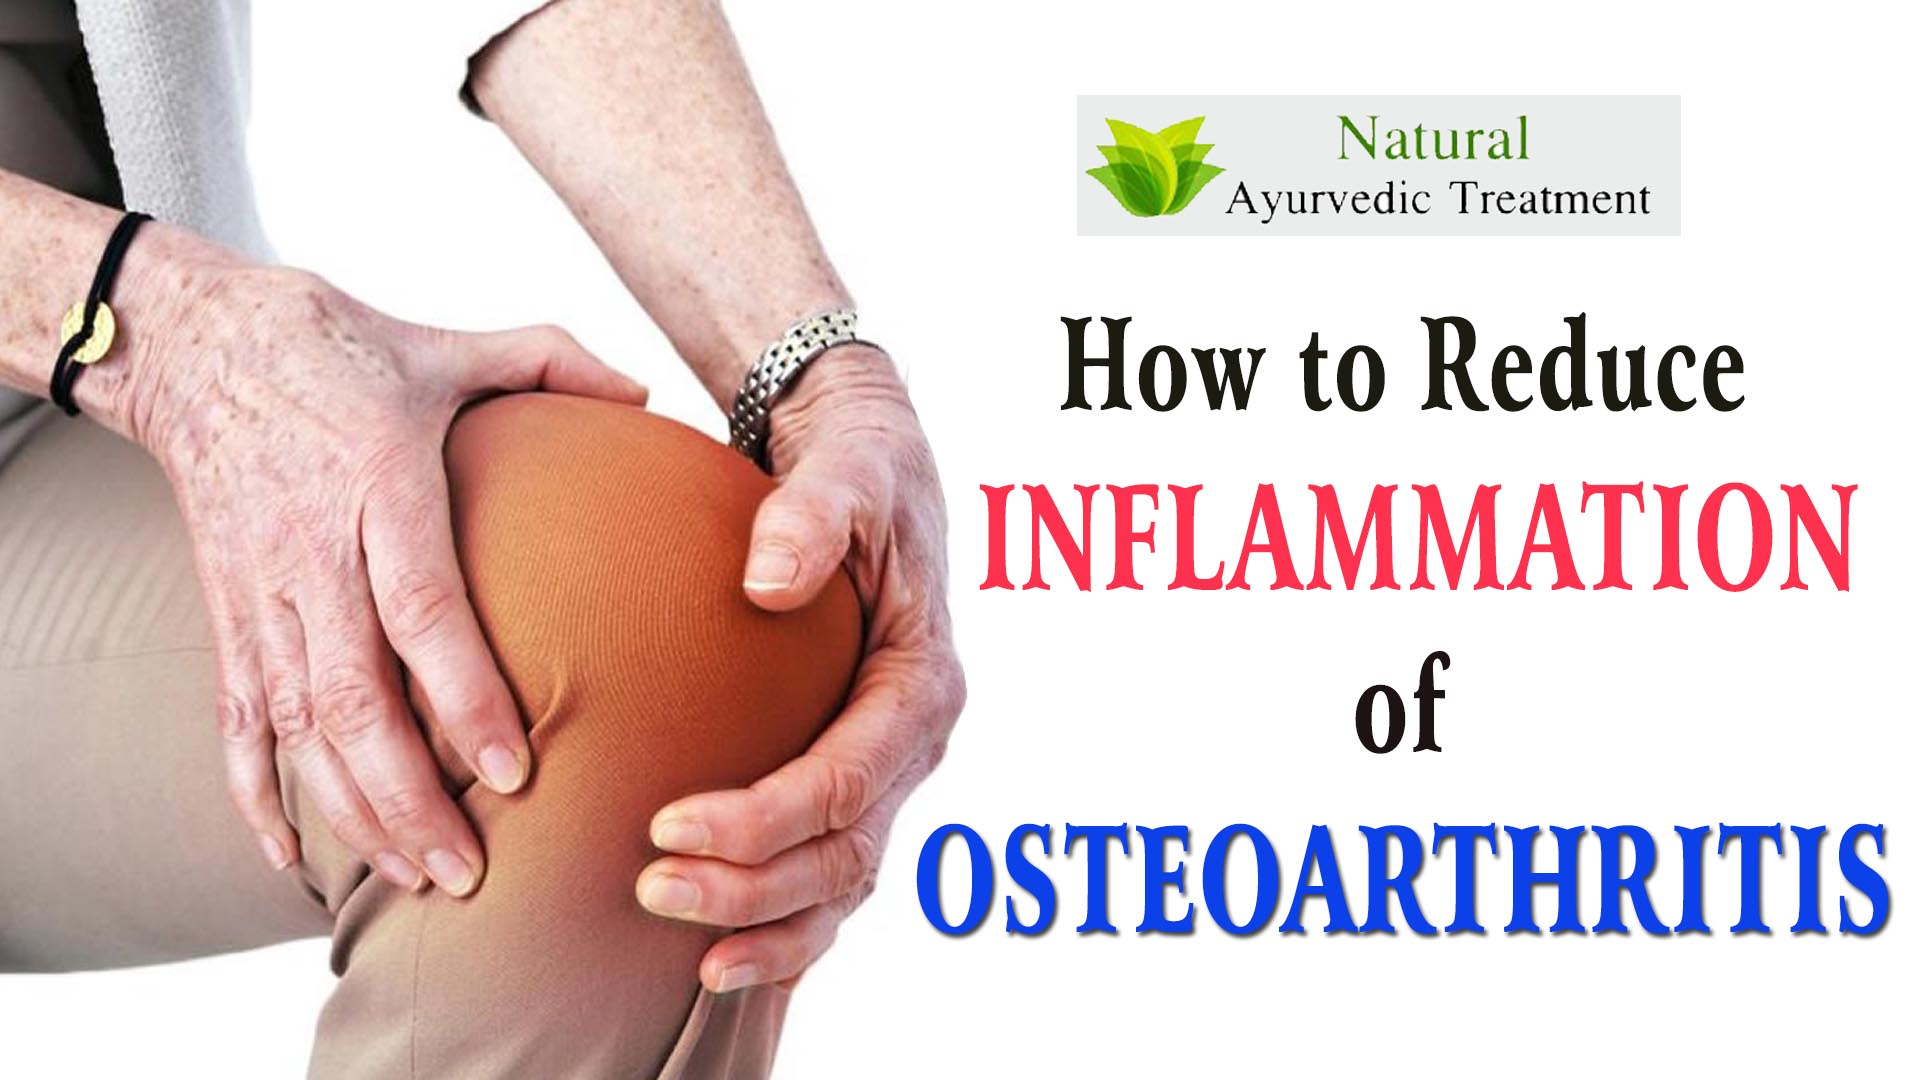 How to Reduce Inflammation of Osteoarthritis?